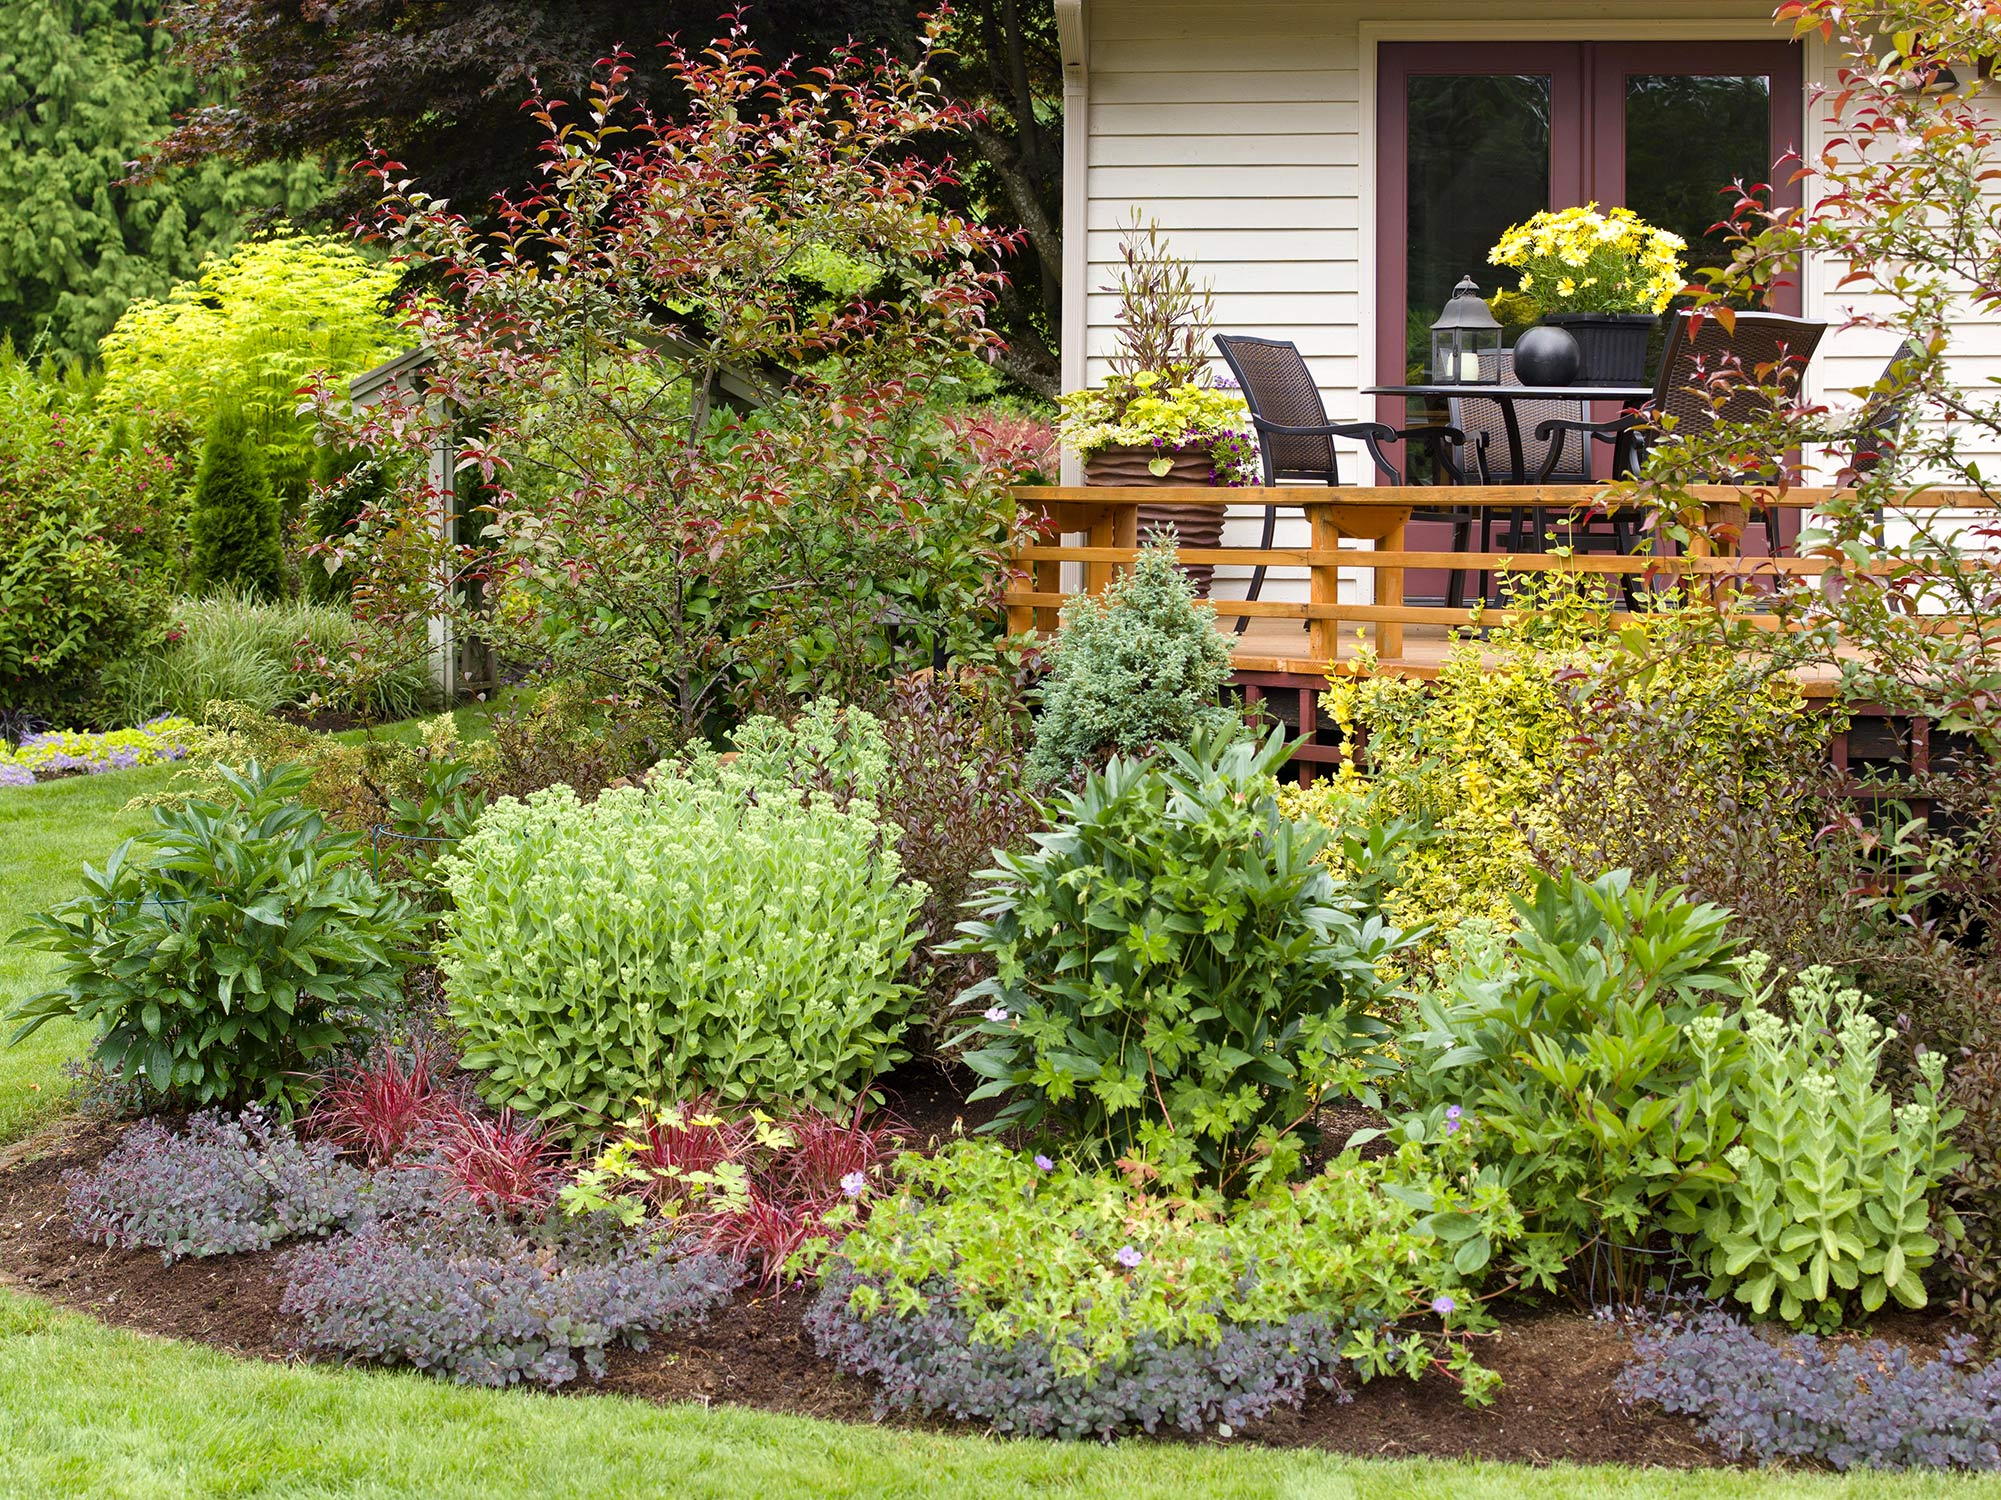 How To Landscape Around A Deck For A Backyard You Ll Be Excited To